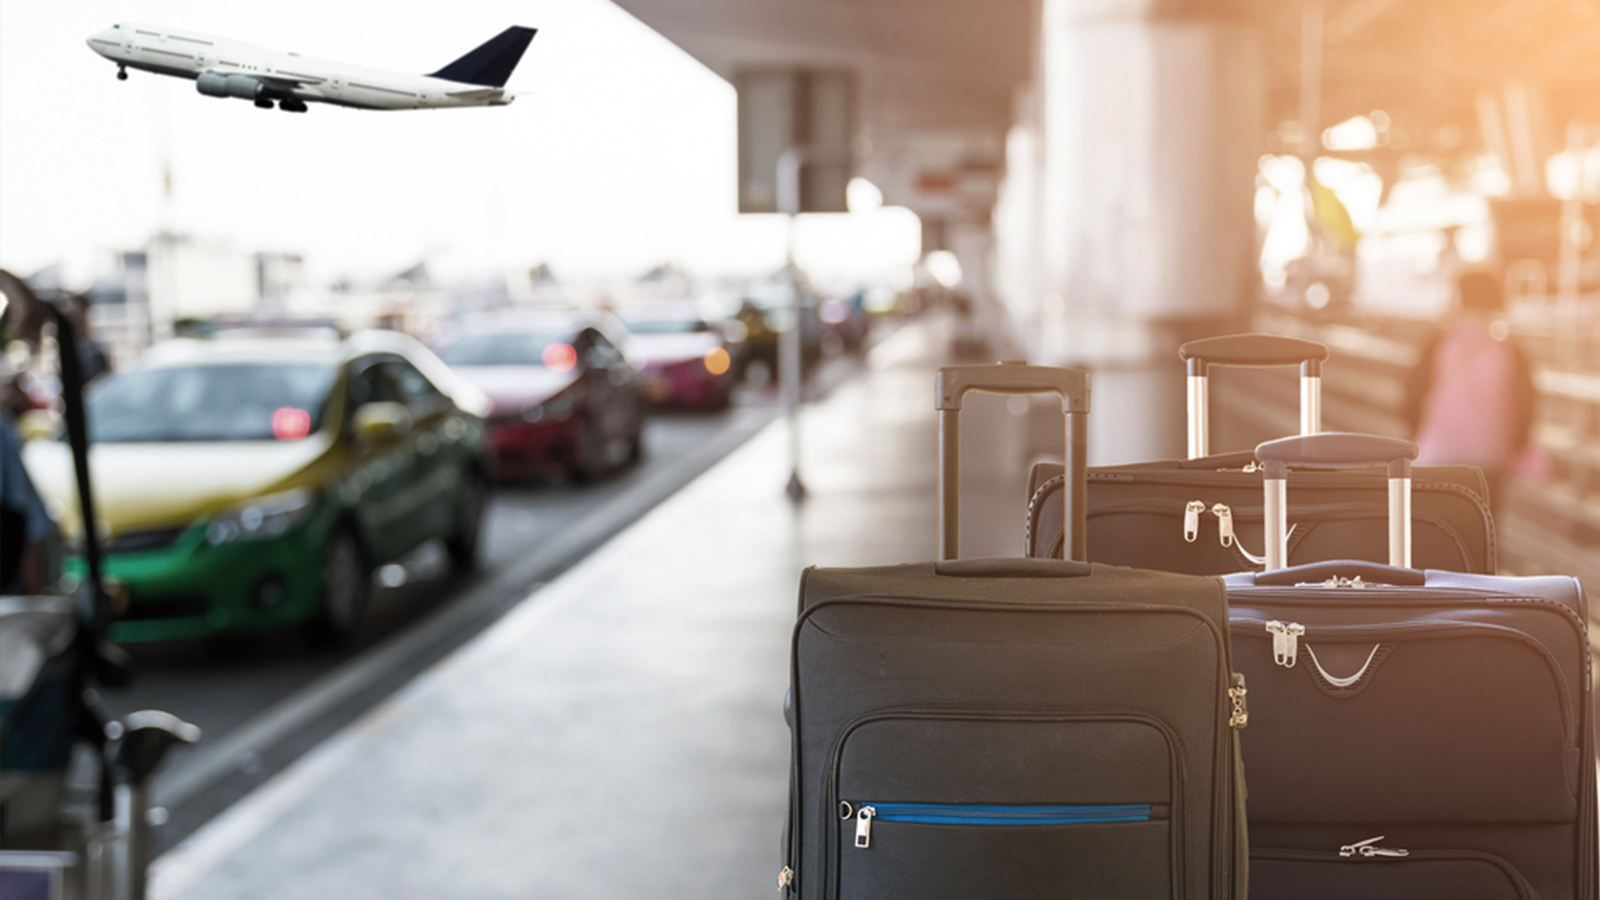 New Airline Rules For Lithium Battery Powered Smart Luggage